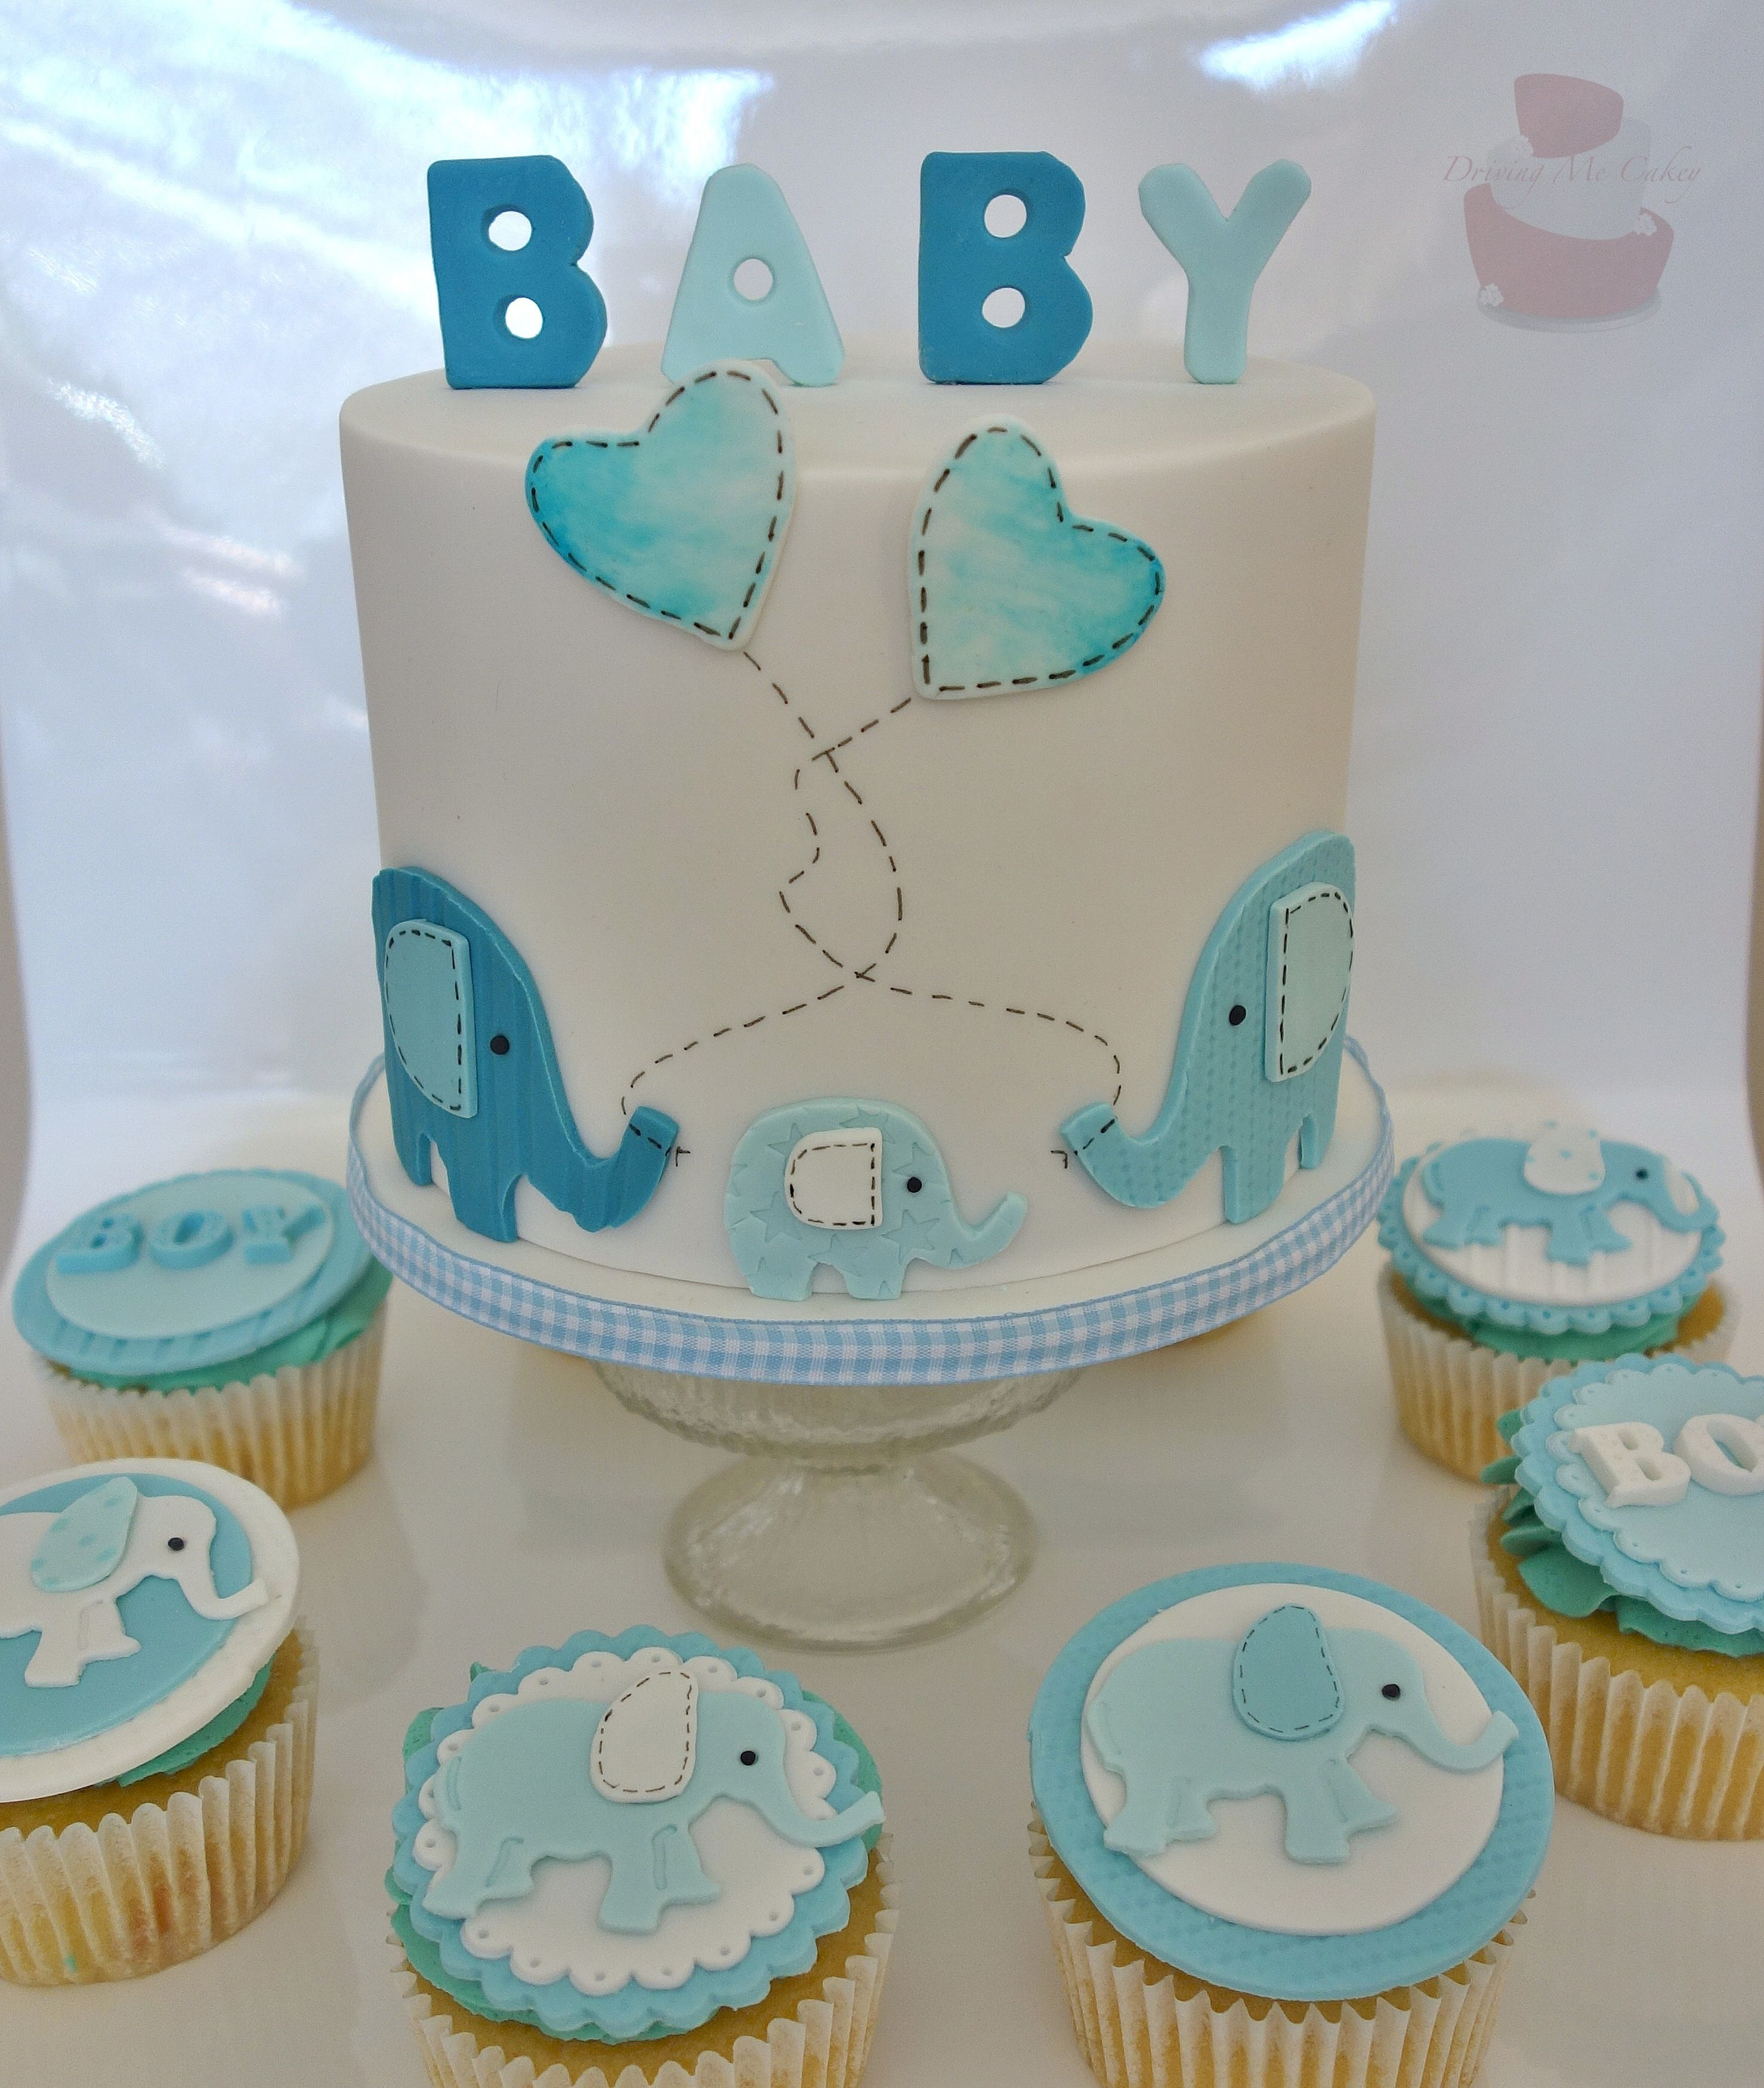 Baby Boy Elephant Baby Shower Cake With Matching Elephant Cupcakes. See My Facebook Page Driving